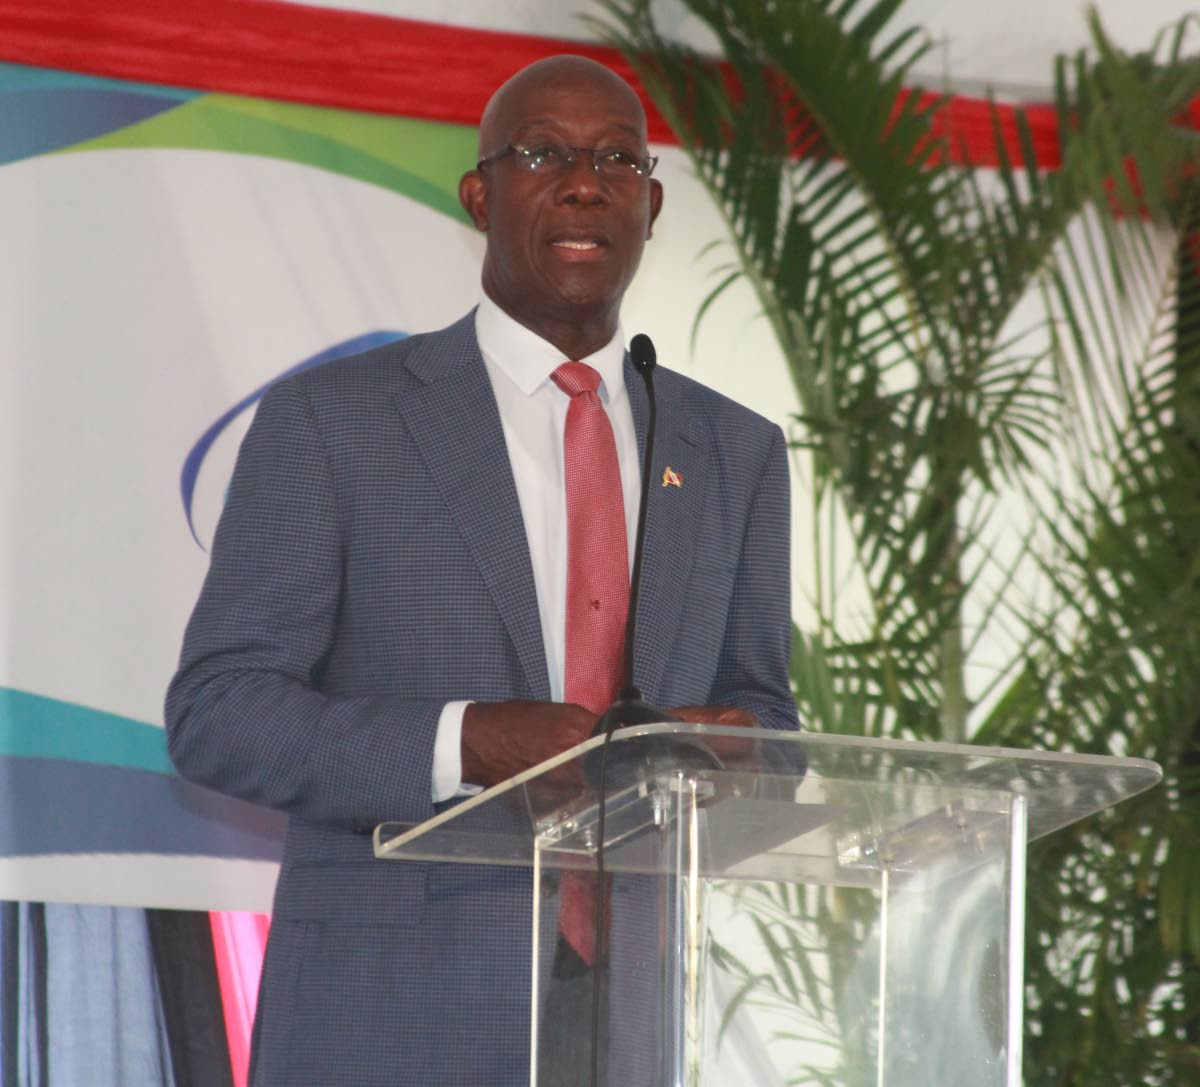 Prime Minister, Dr Keith Rowley speaking at the project launch of the Alutech Project, Tamana InTeck Park. photo by enrique assoon